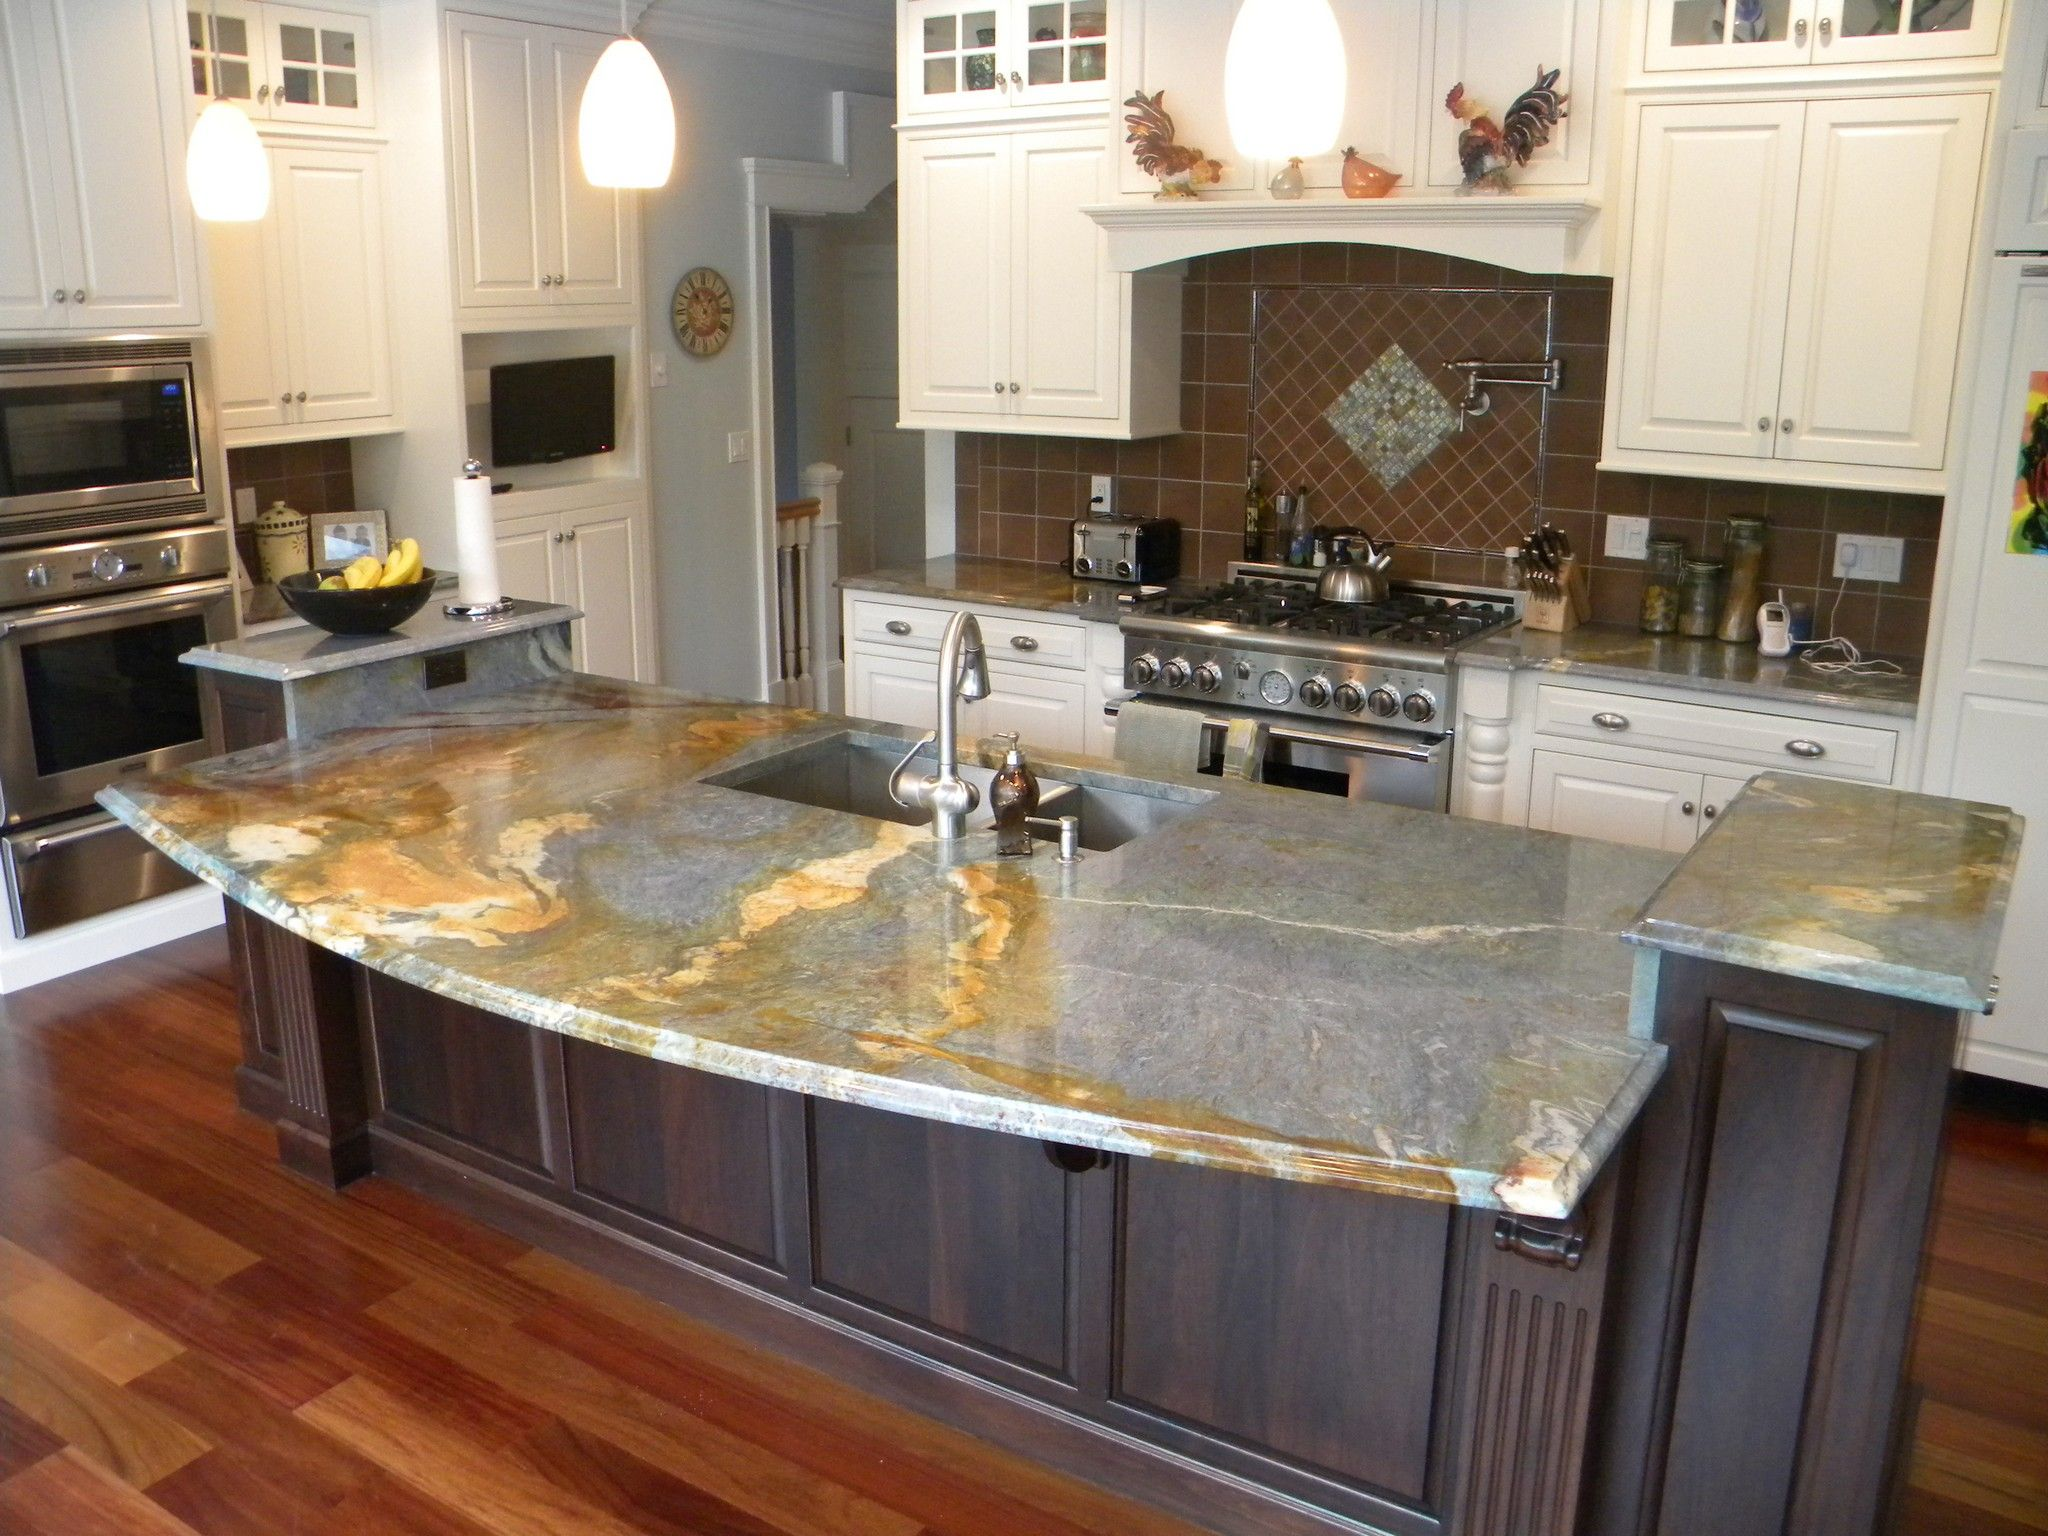 Waterfall Countertop Granite Countertops Marble Countertops And Quartz Countertops New